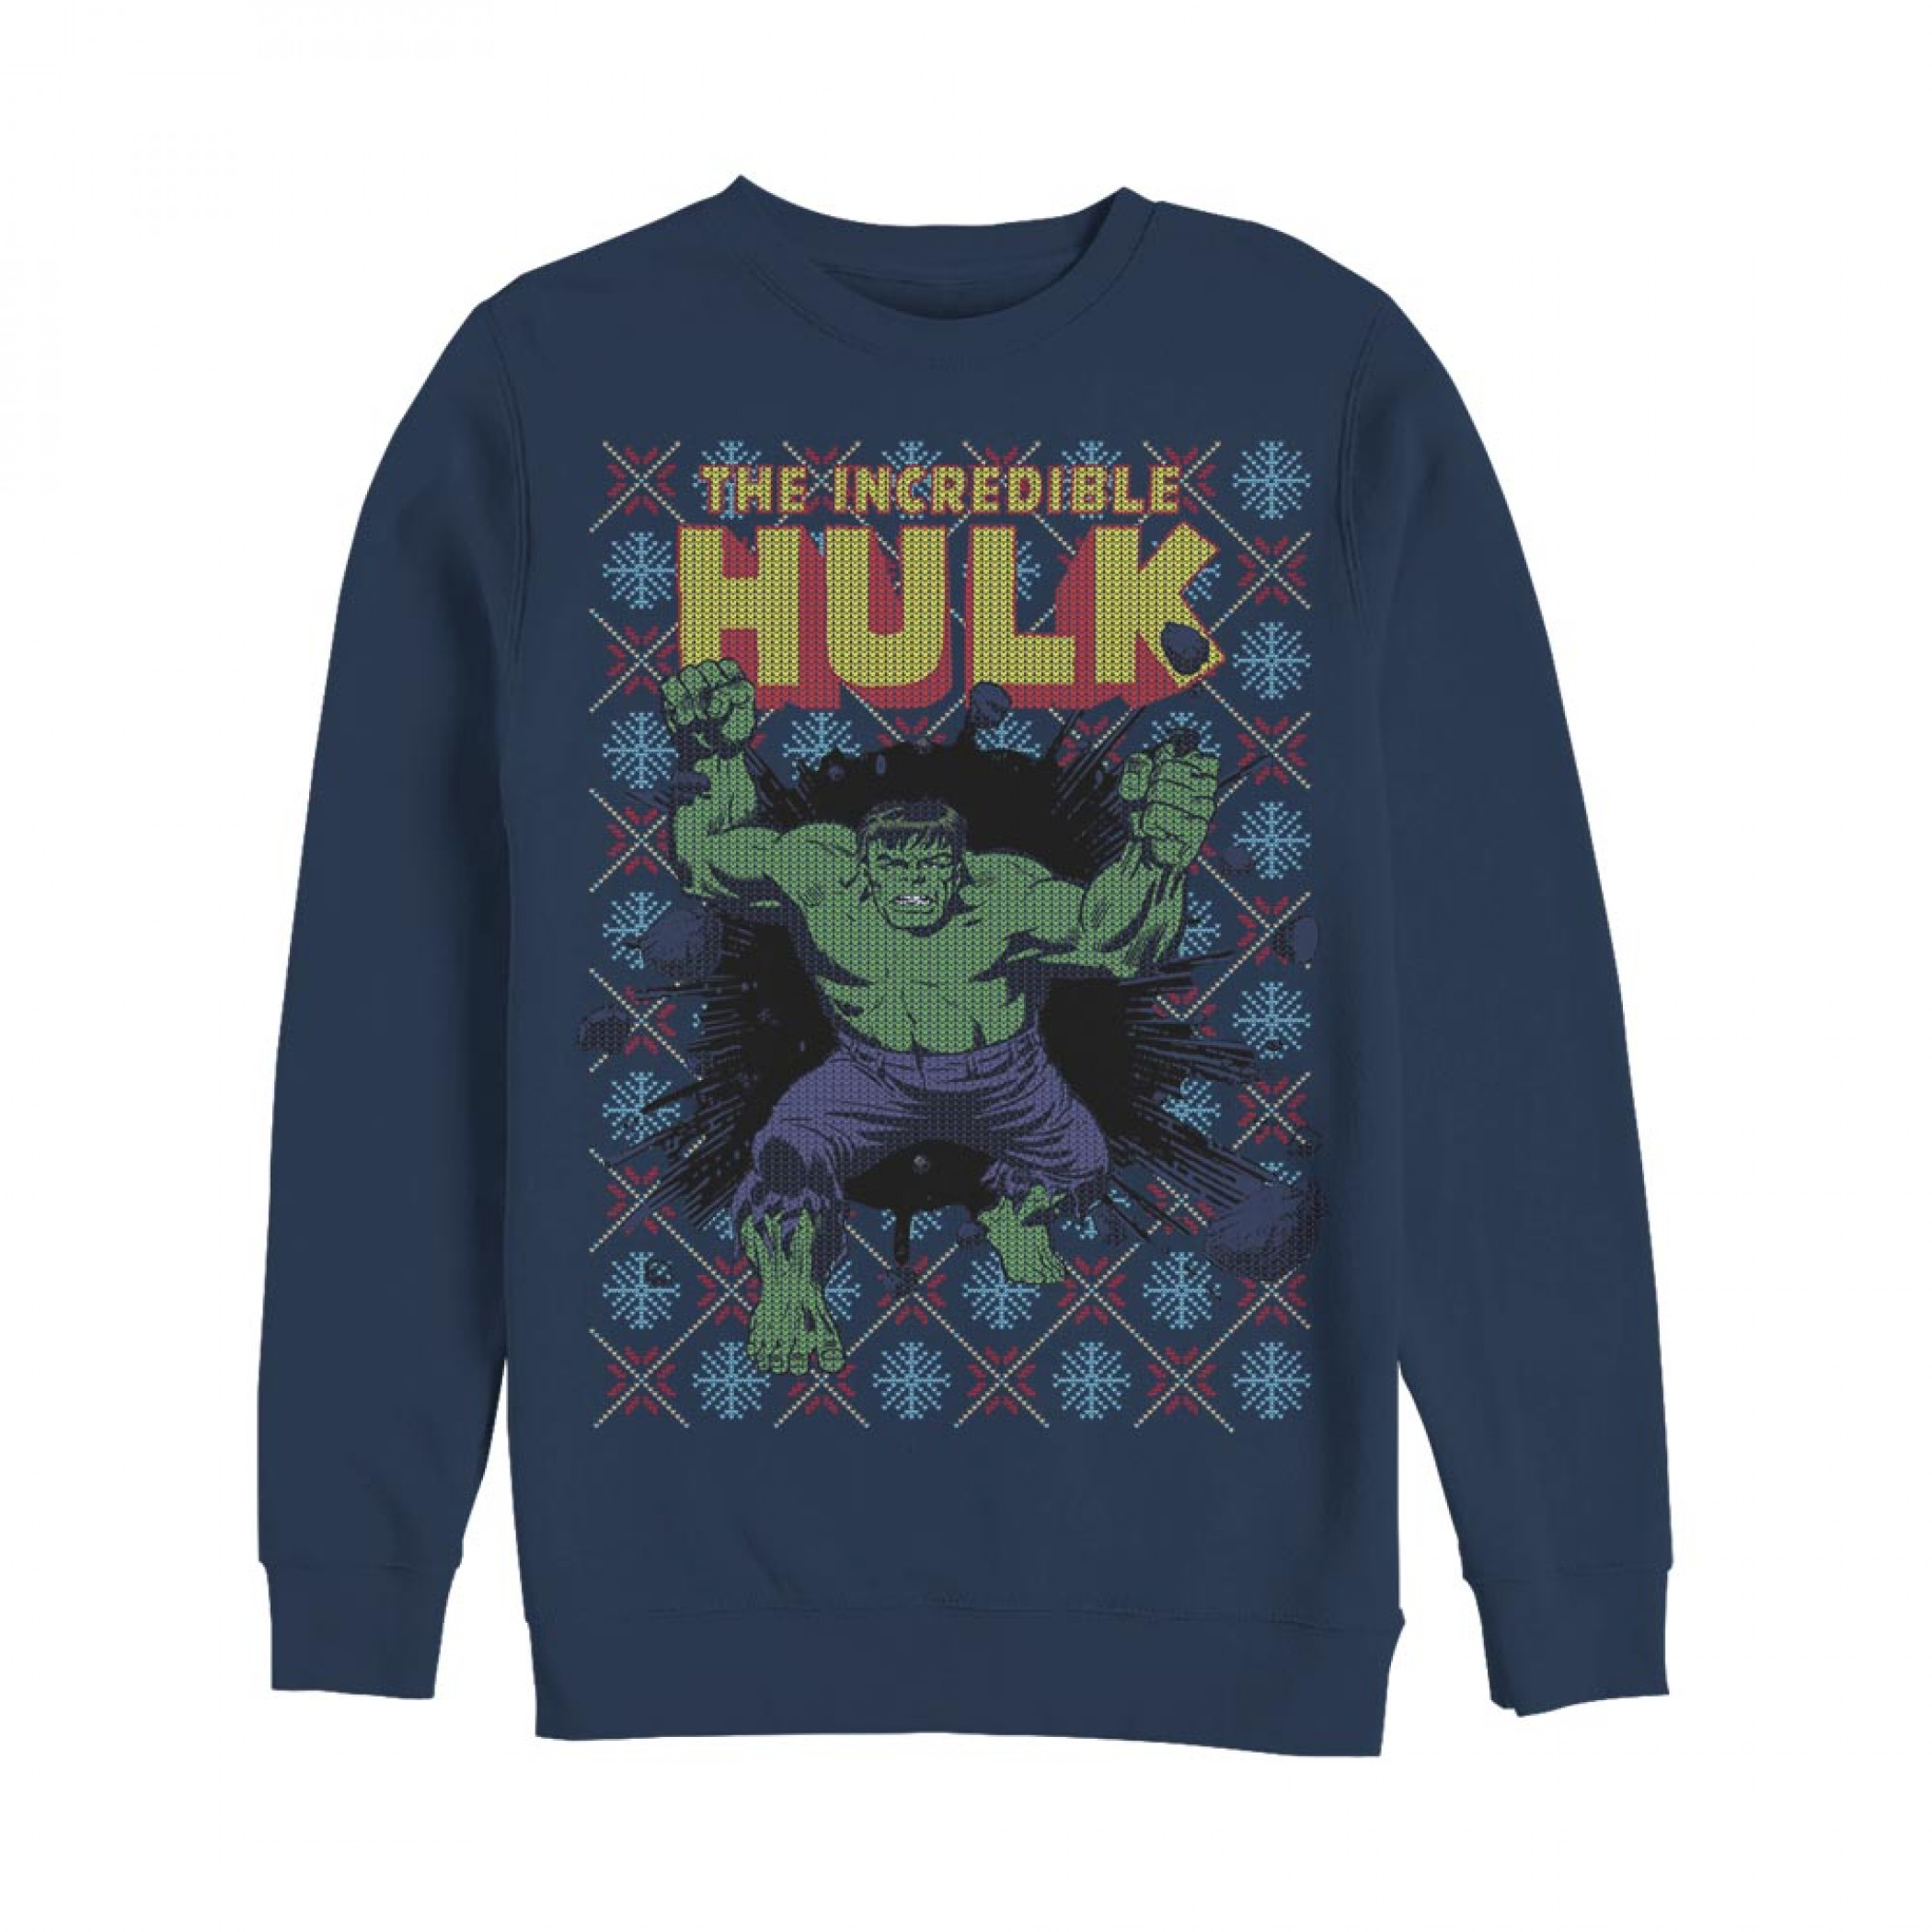 Hulk Ugly Christmas Sweater Design Sweatshirt